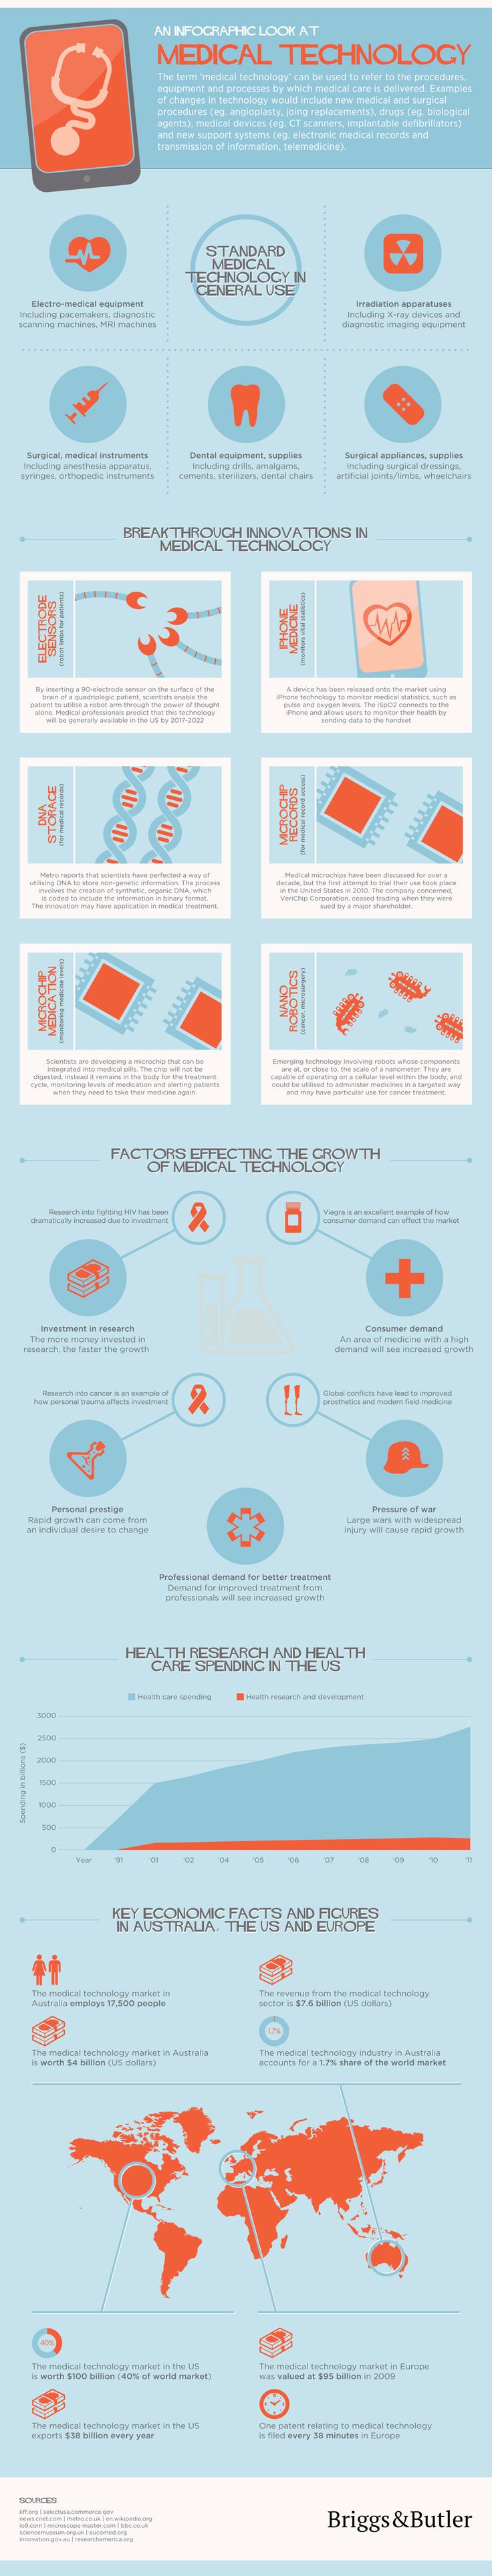 The Growth Of Medical Technology Infographic